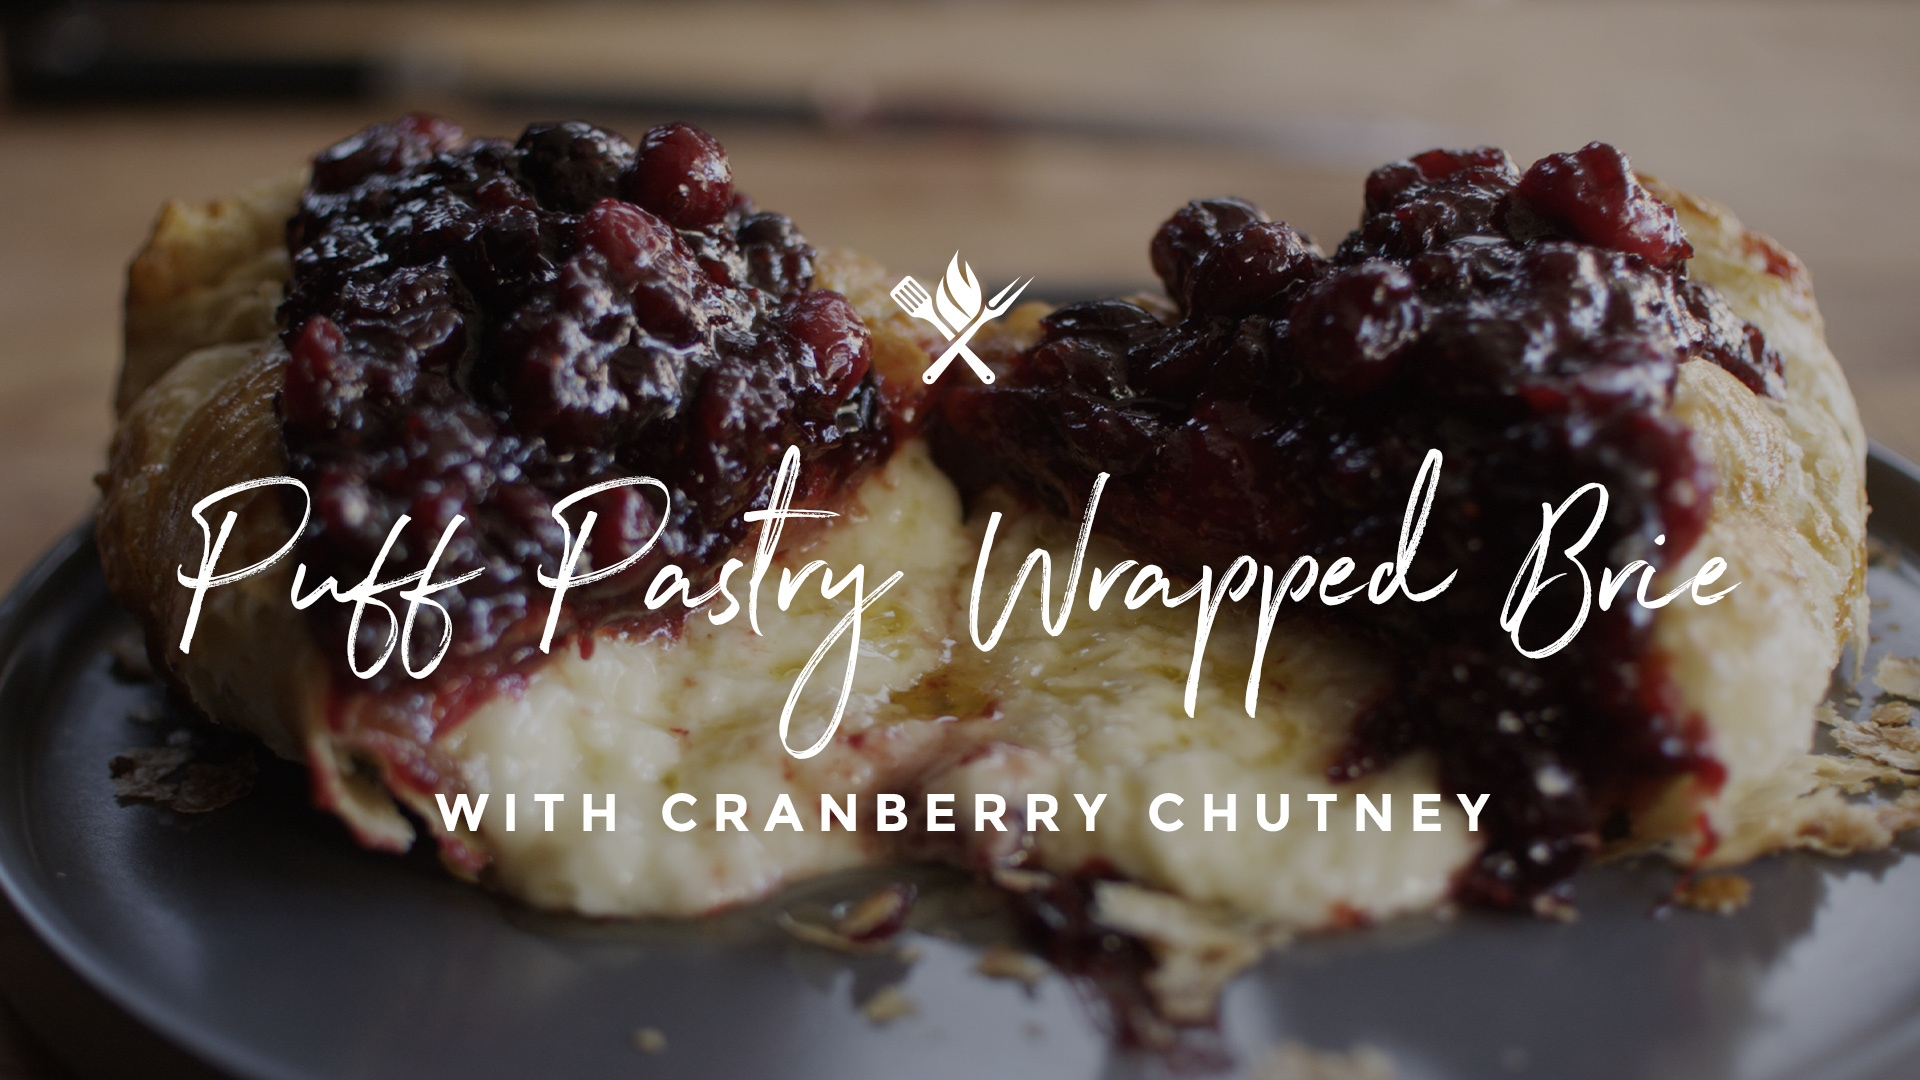 How to make Puff Pastry Wrapped Brie with Cranberry Chutney